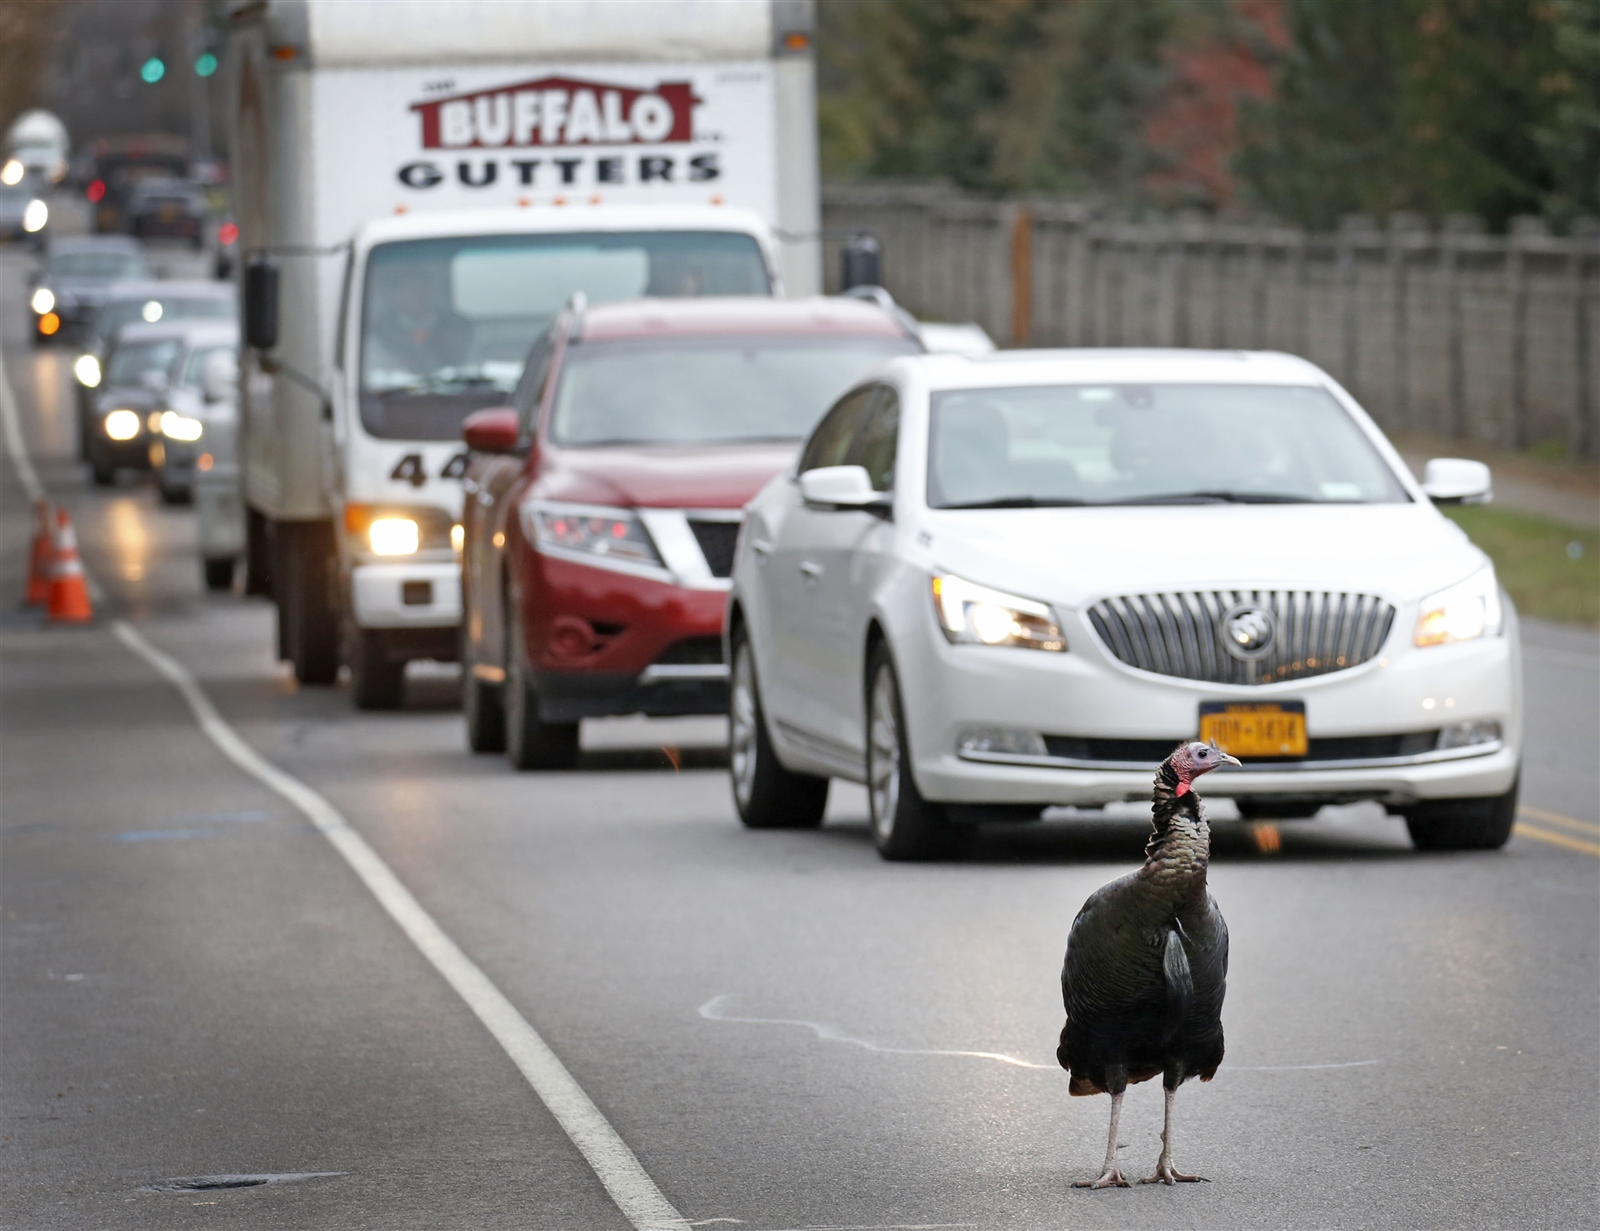 Traffic on Klein Road is at a standstill as the full-grown turkey struts across the road. This is a daily routine for this wild turkey, who taunts drivers near the Paradise and Klein Road intersection.